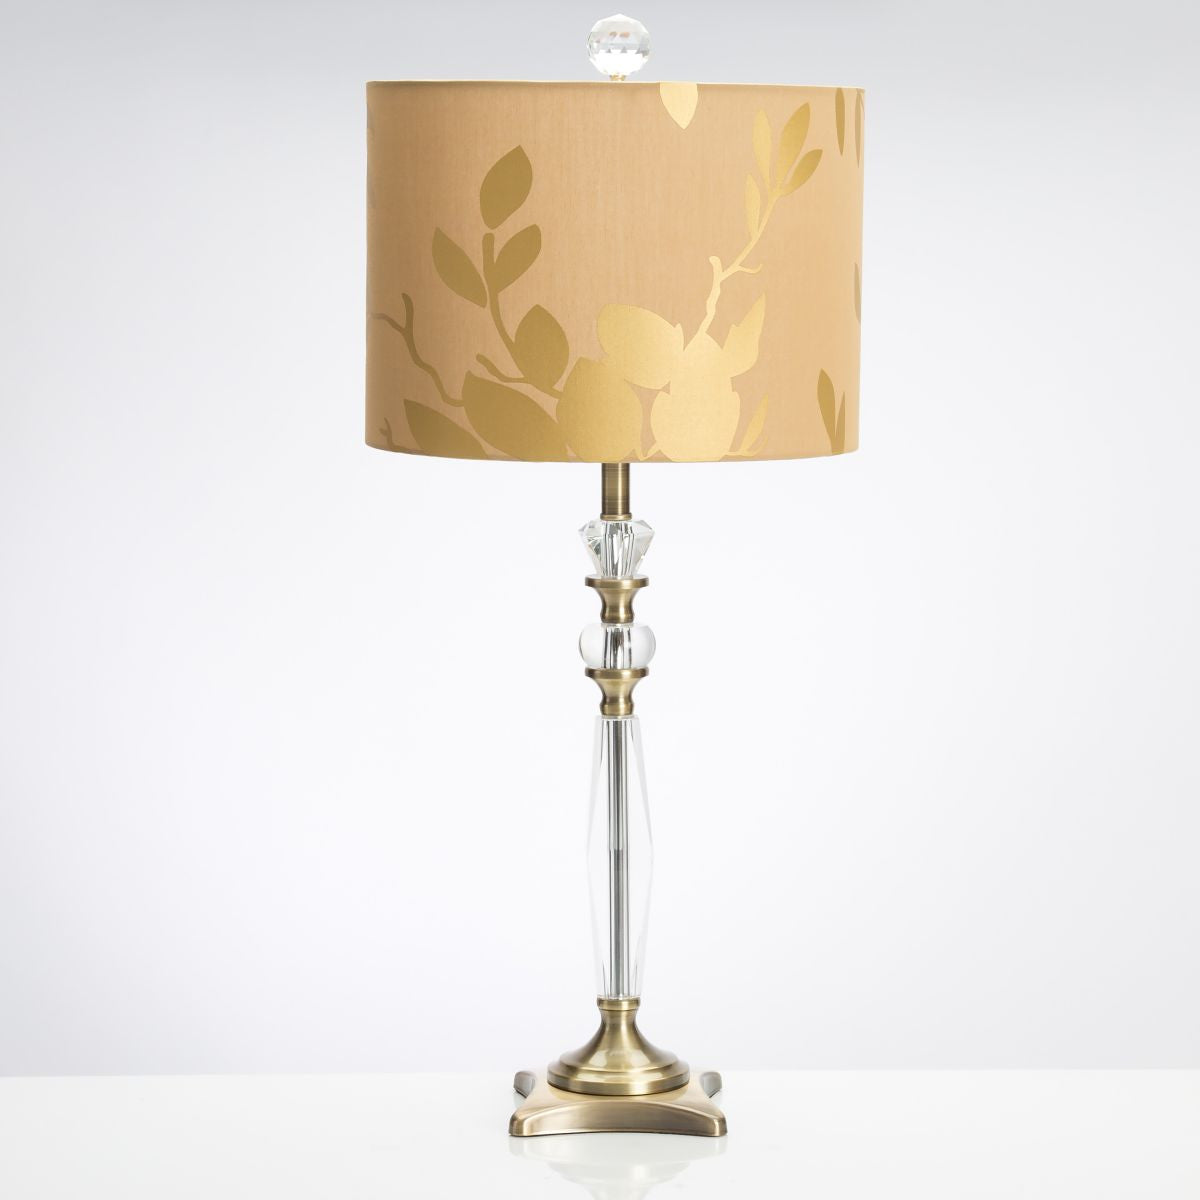 Golden leaf table lamp design by couture lamps burke decor golden leaf table lamp design by couture lamps aloadofball Image collections